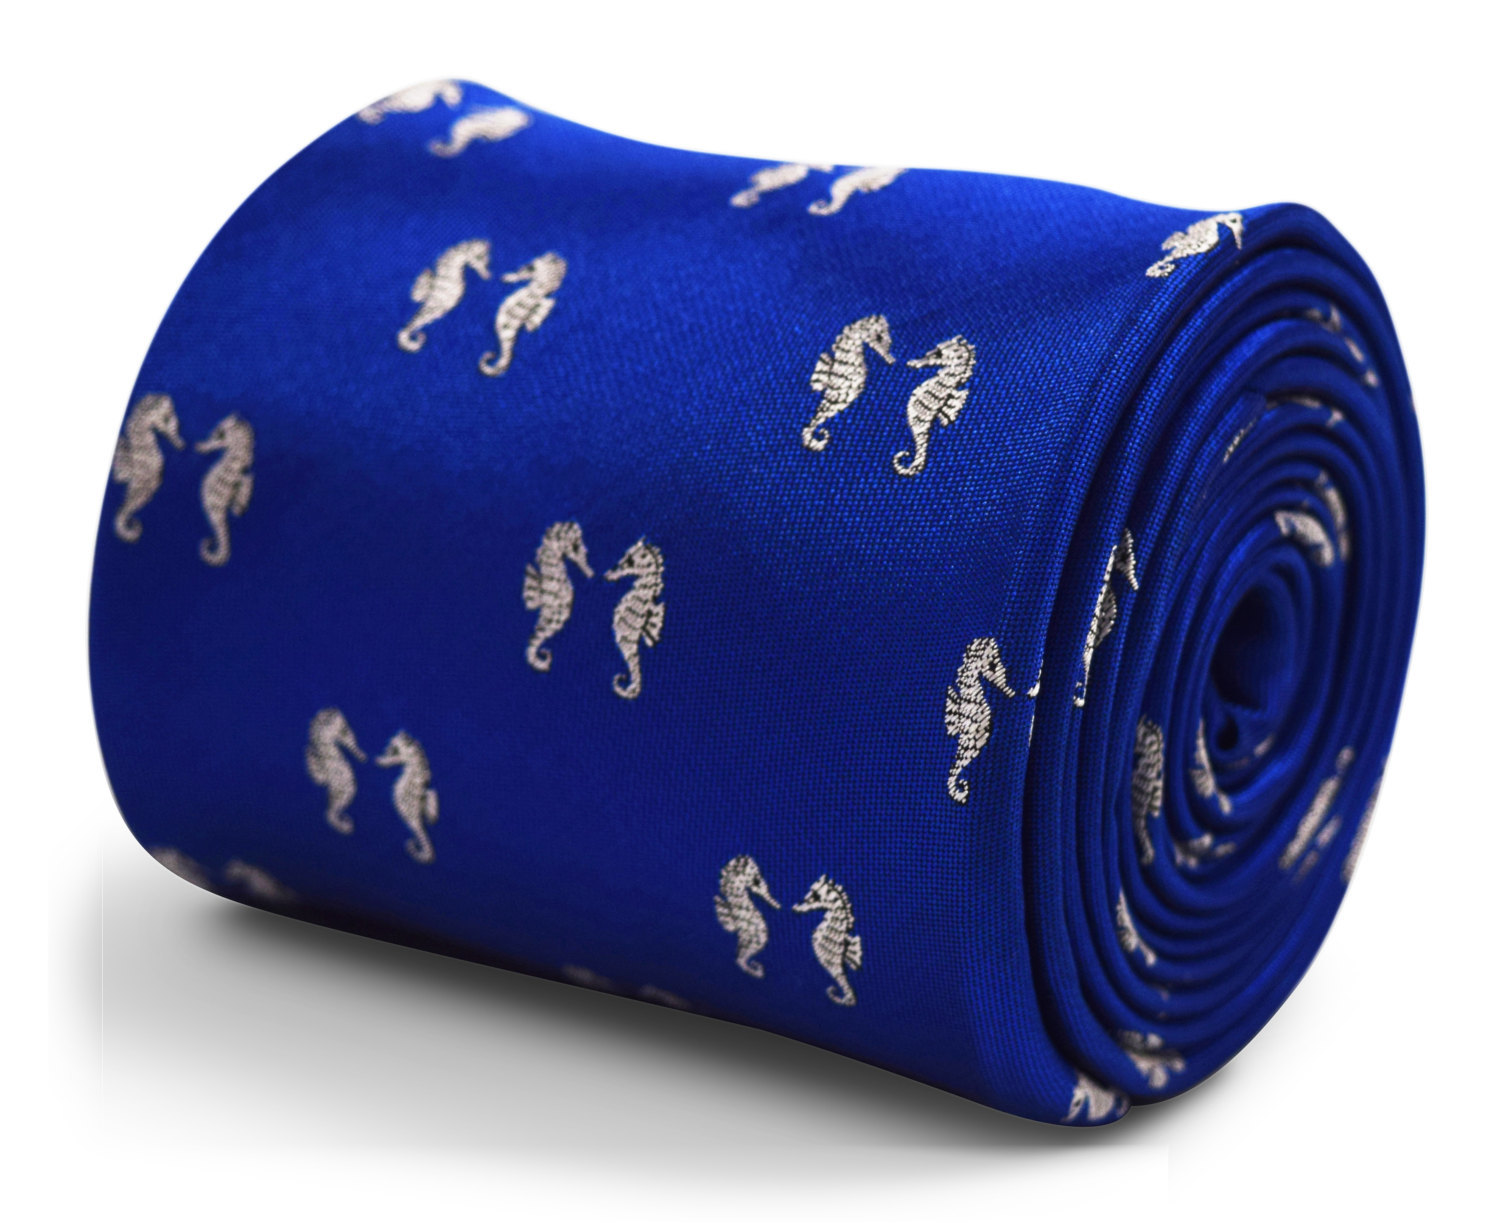 royal blue tie with symmetrical seahorse embroidered design with signature flora